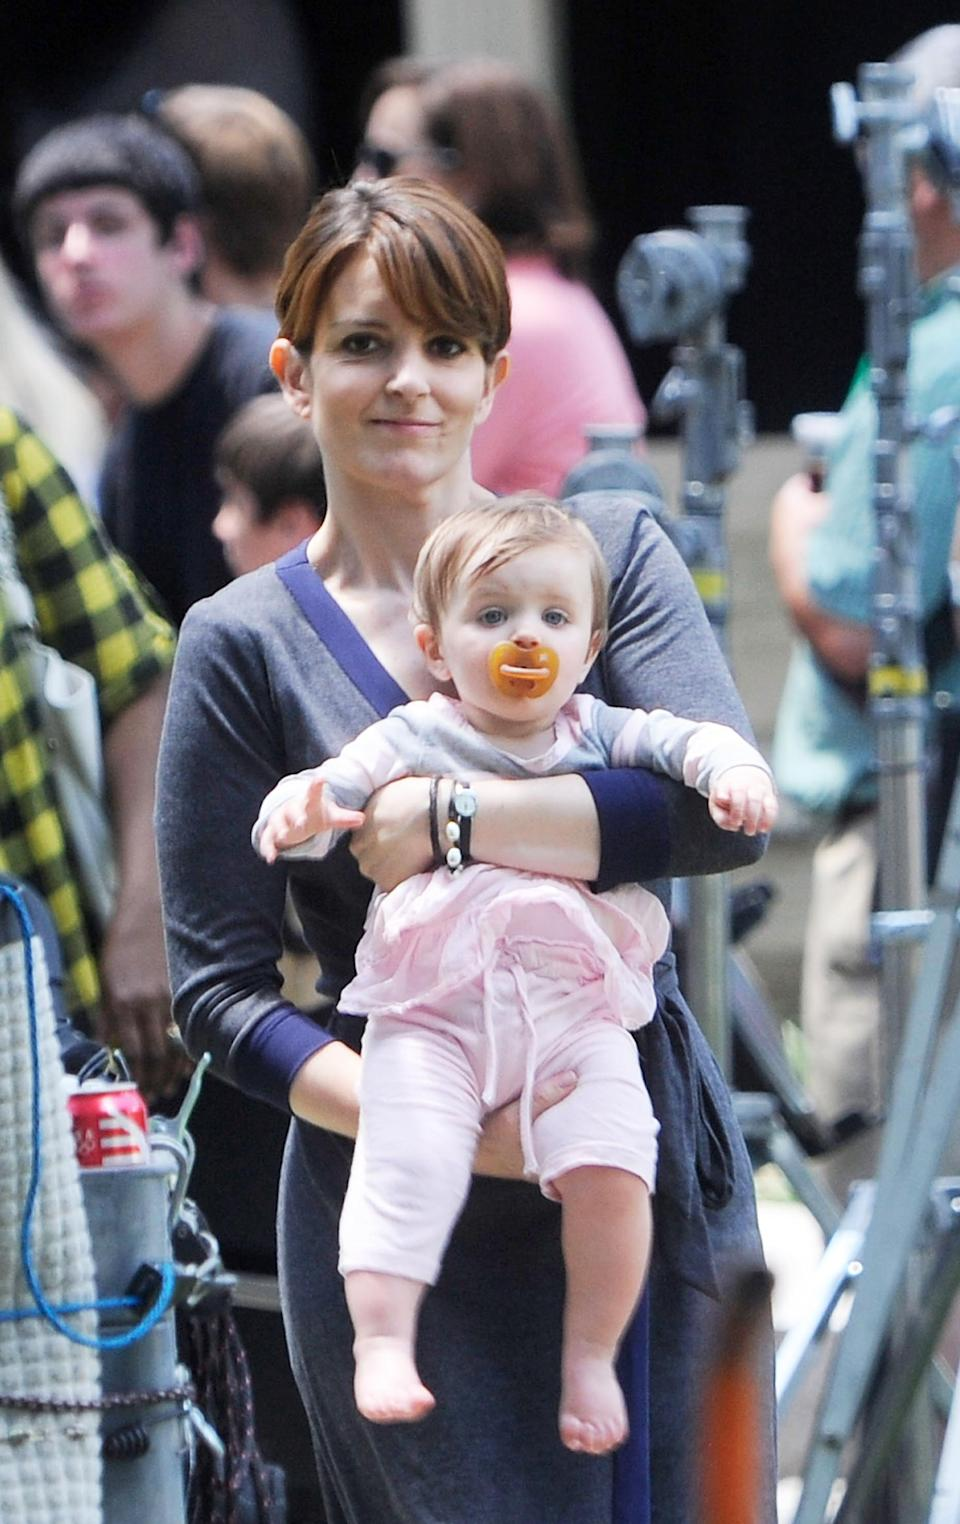 """<p>The comedian was 41 when she had her second child, baby girl Penelope. She <a href=""""http://people.com/babies/tina-fey-baby-born-daughter-penelope-athena/"""" rel=""""nofollow noopener"""" target=""""_blank"""" data-ylk=""""slk:talked"""" class=""""link rapid-noclick-resp"""">talked</a> with Oprah about wanting to prioritize expanding her family: """"My husband and I really decided that we felt rather than risk having <em>30 Roc</em>k end in several years and feeling like part of our family is missing that we were going to prioritize our family,"""" she said. (Photo: Bobby Bank/Getty Images) </p>"""